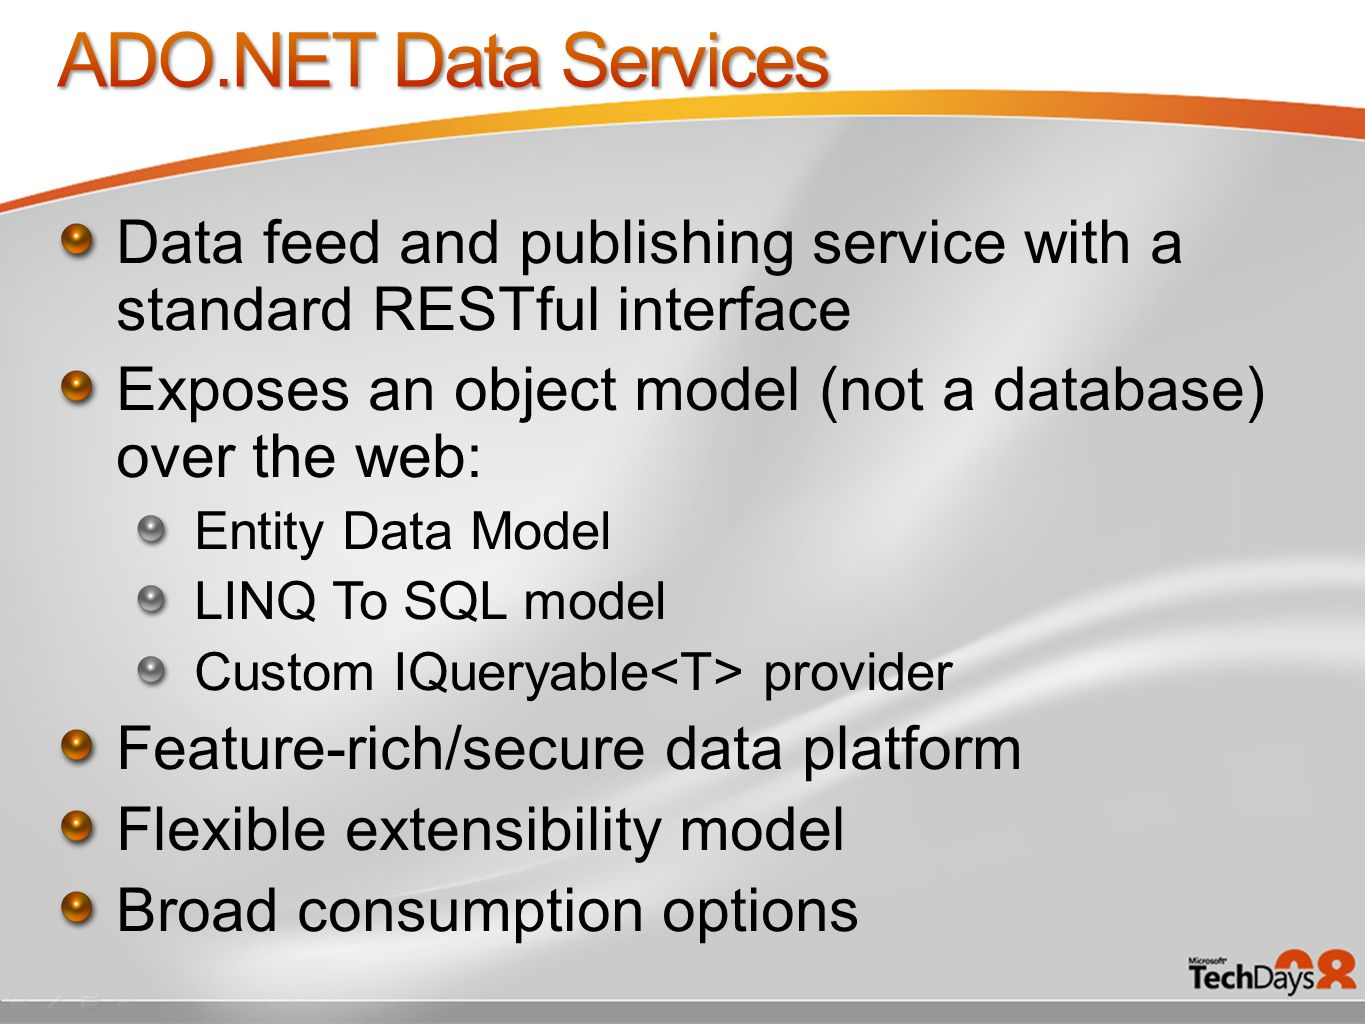 Data feed and publishing service with a standard RESTful interface Exposes an object model (not a database) over the web: Entity Data Model LINQ To SQL model Custom IQueryable provider Feature-rich/secure data platform Flexible extensibility model Broad consumption options